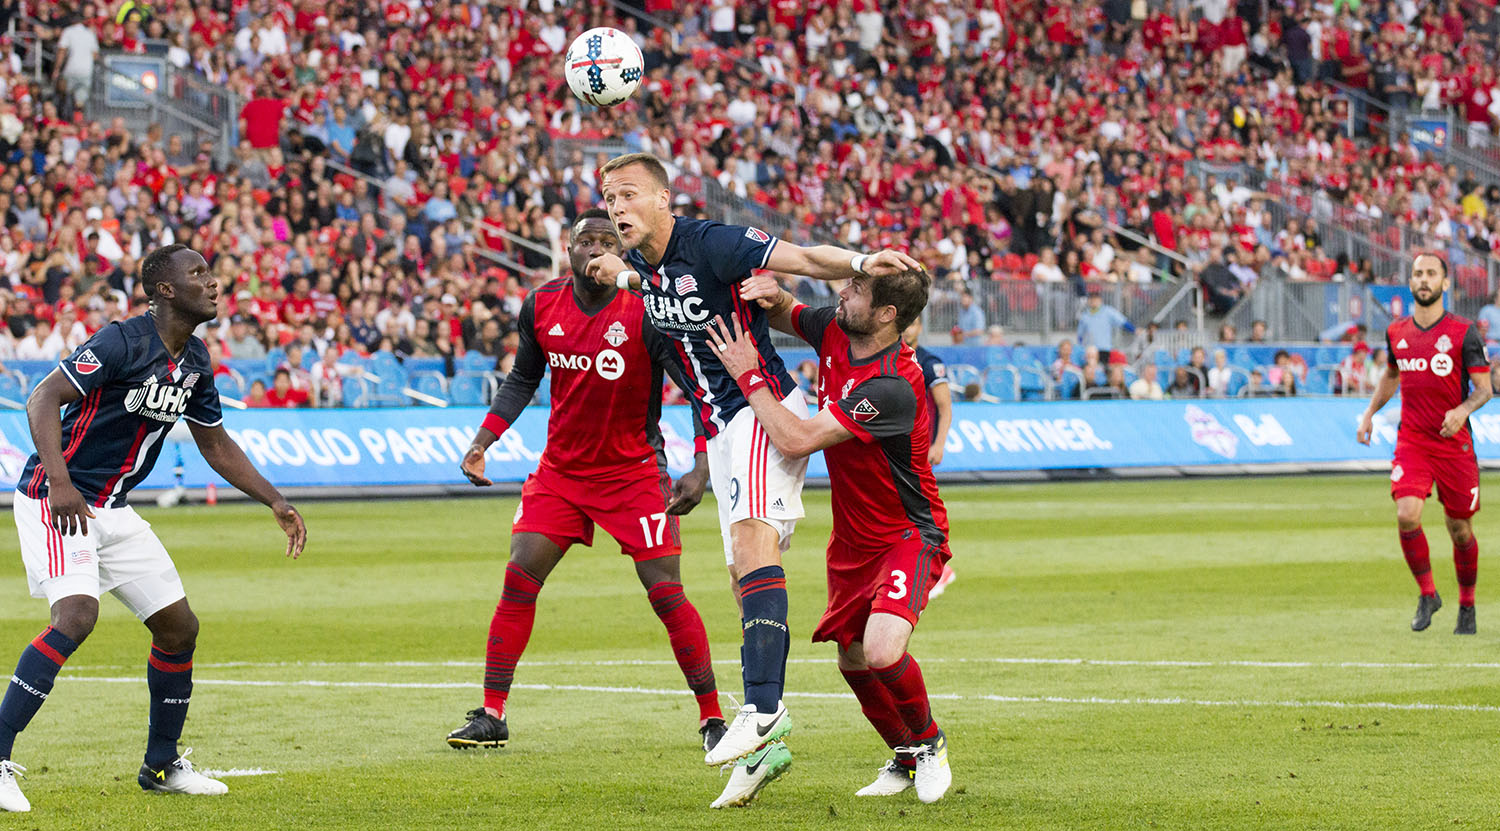 A New England Revolution player heads the ball away from the net at BMO Field. Image by Dennis Marciniak of denMAR